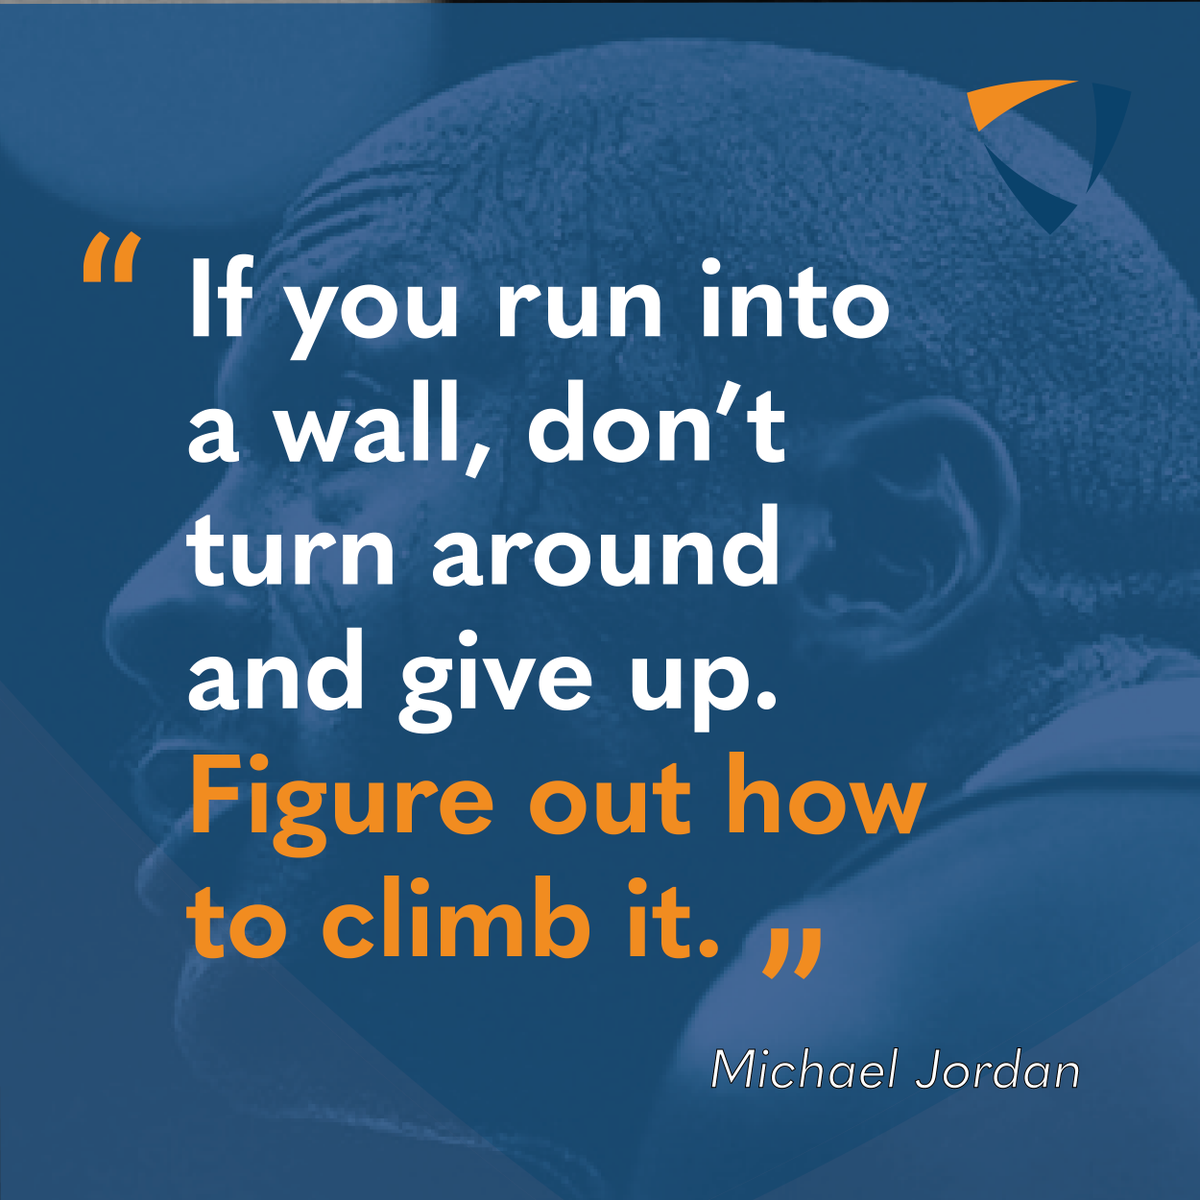 #MichaelJordan #ThursdayThoughts